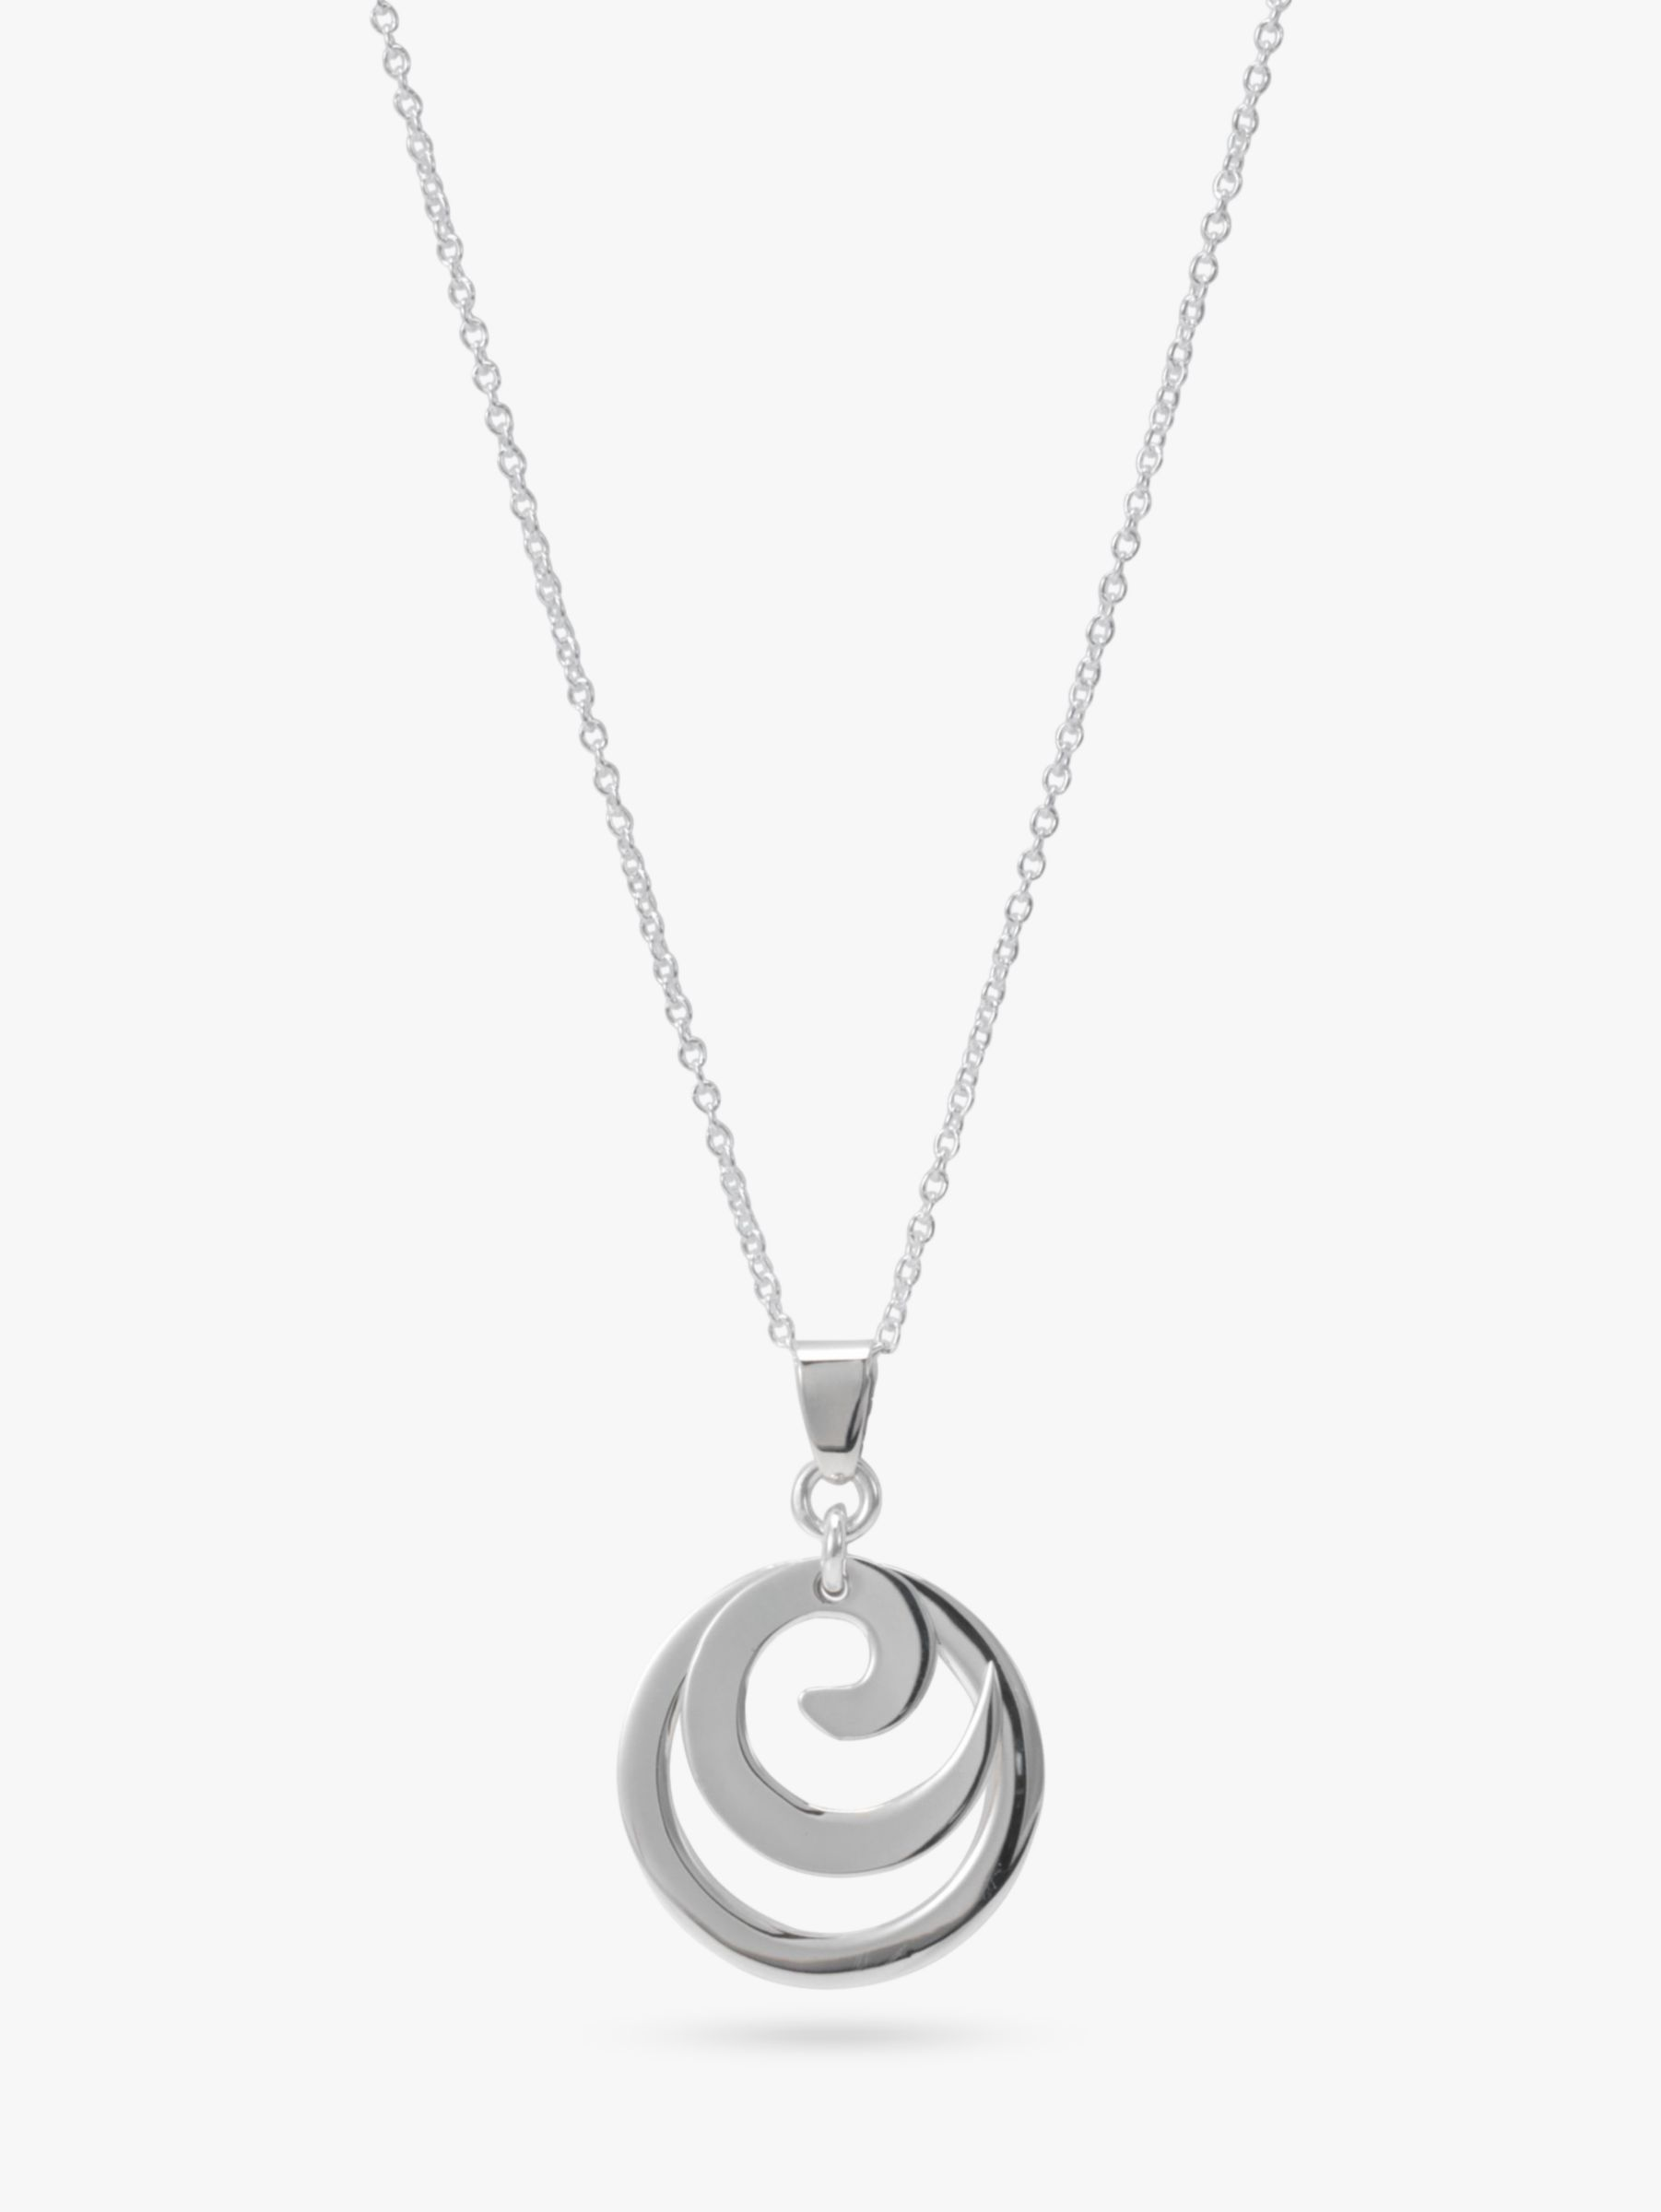 Andea Silver Spiral Circle Pendant Necklace